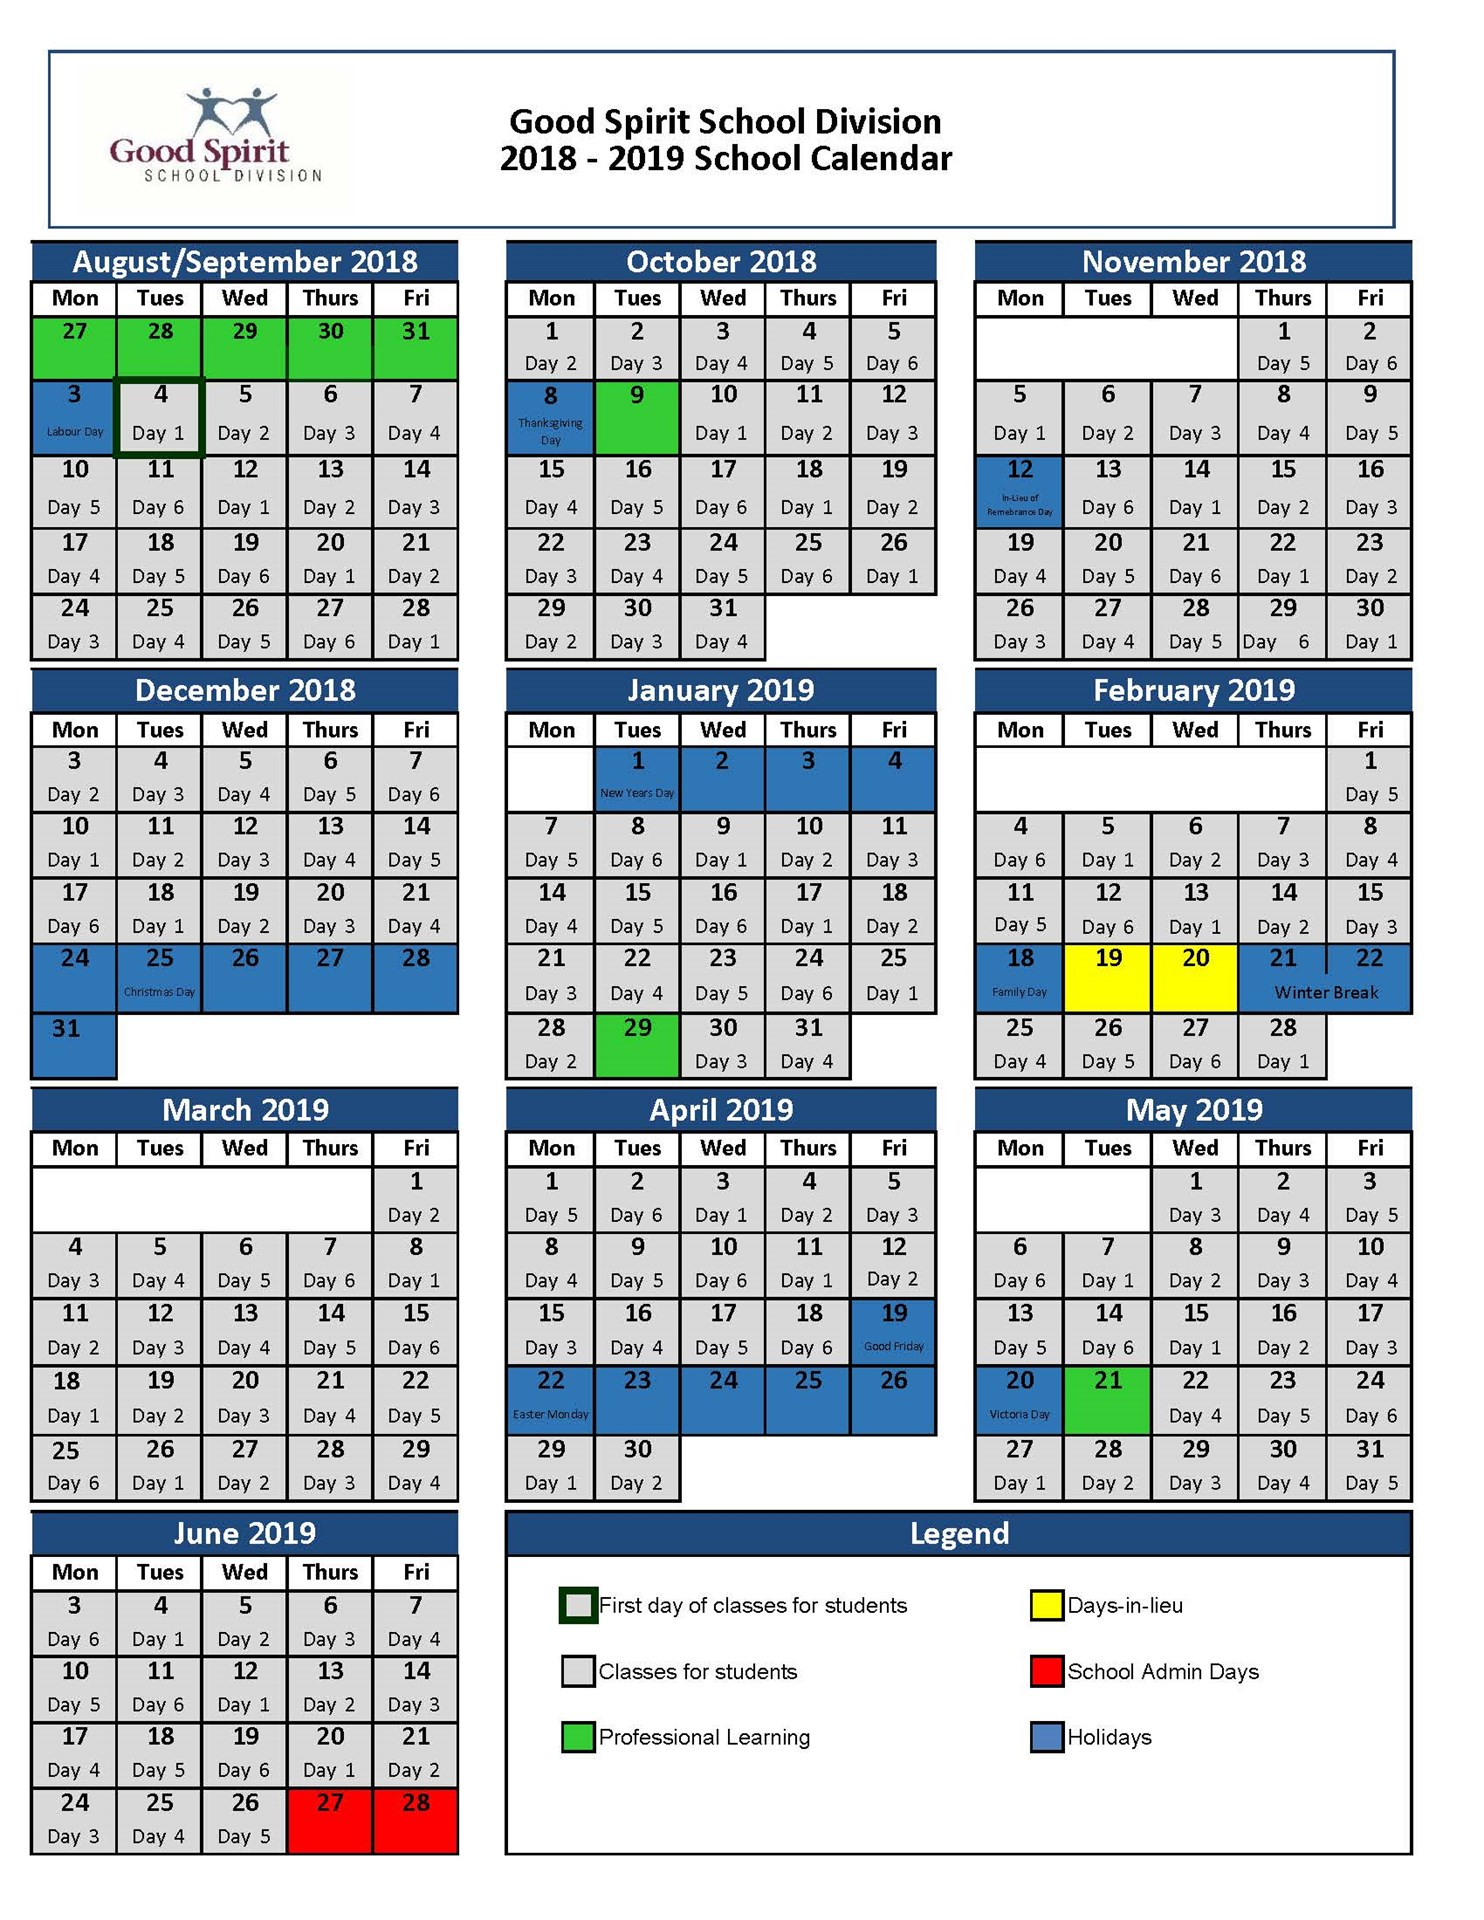 School Year Calendar Good Spirit School Division 204